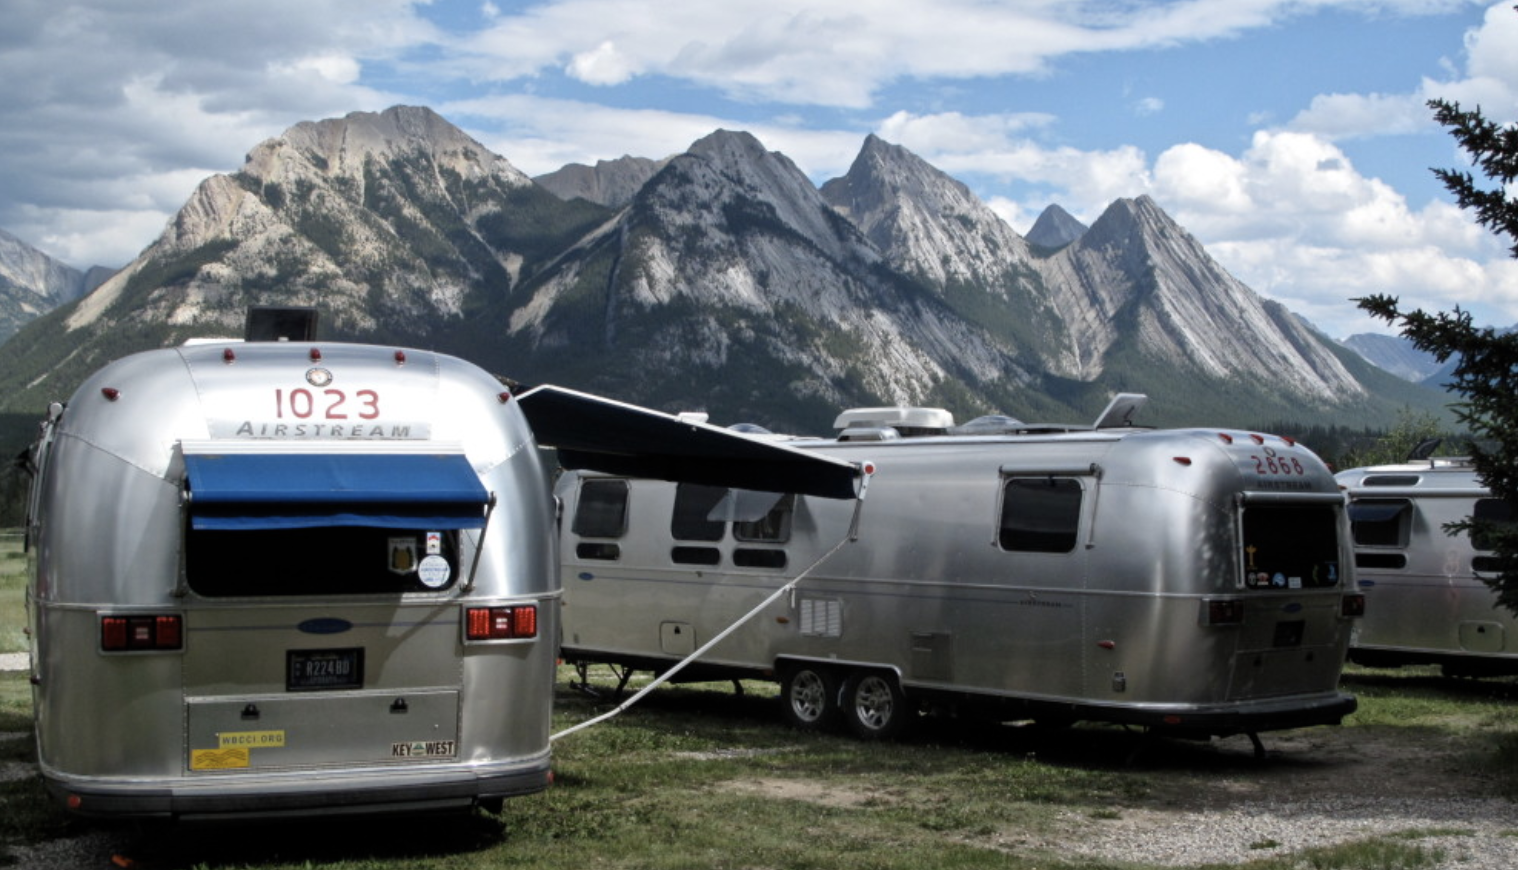 Trailers Parked and mountain scenery